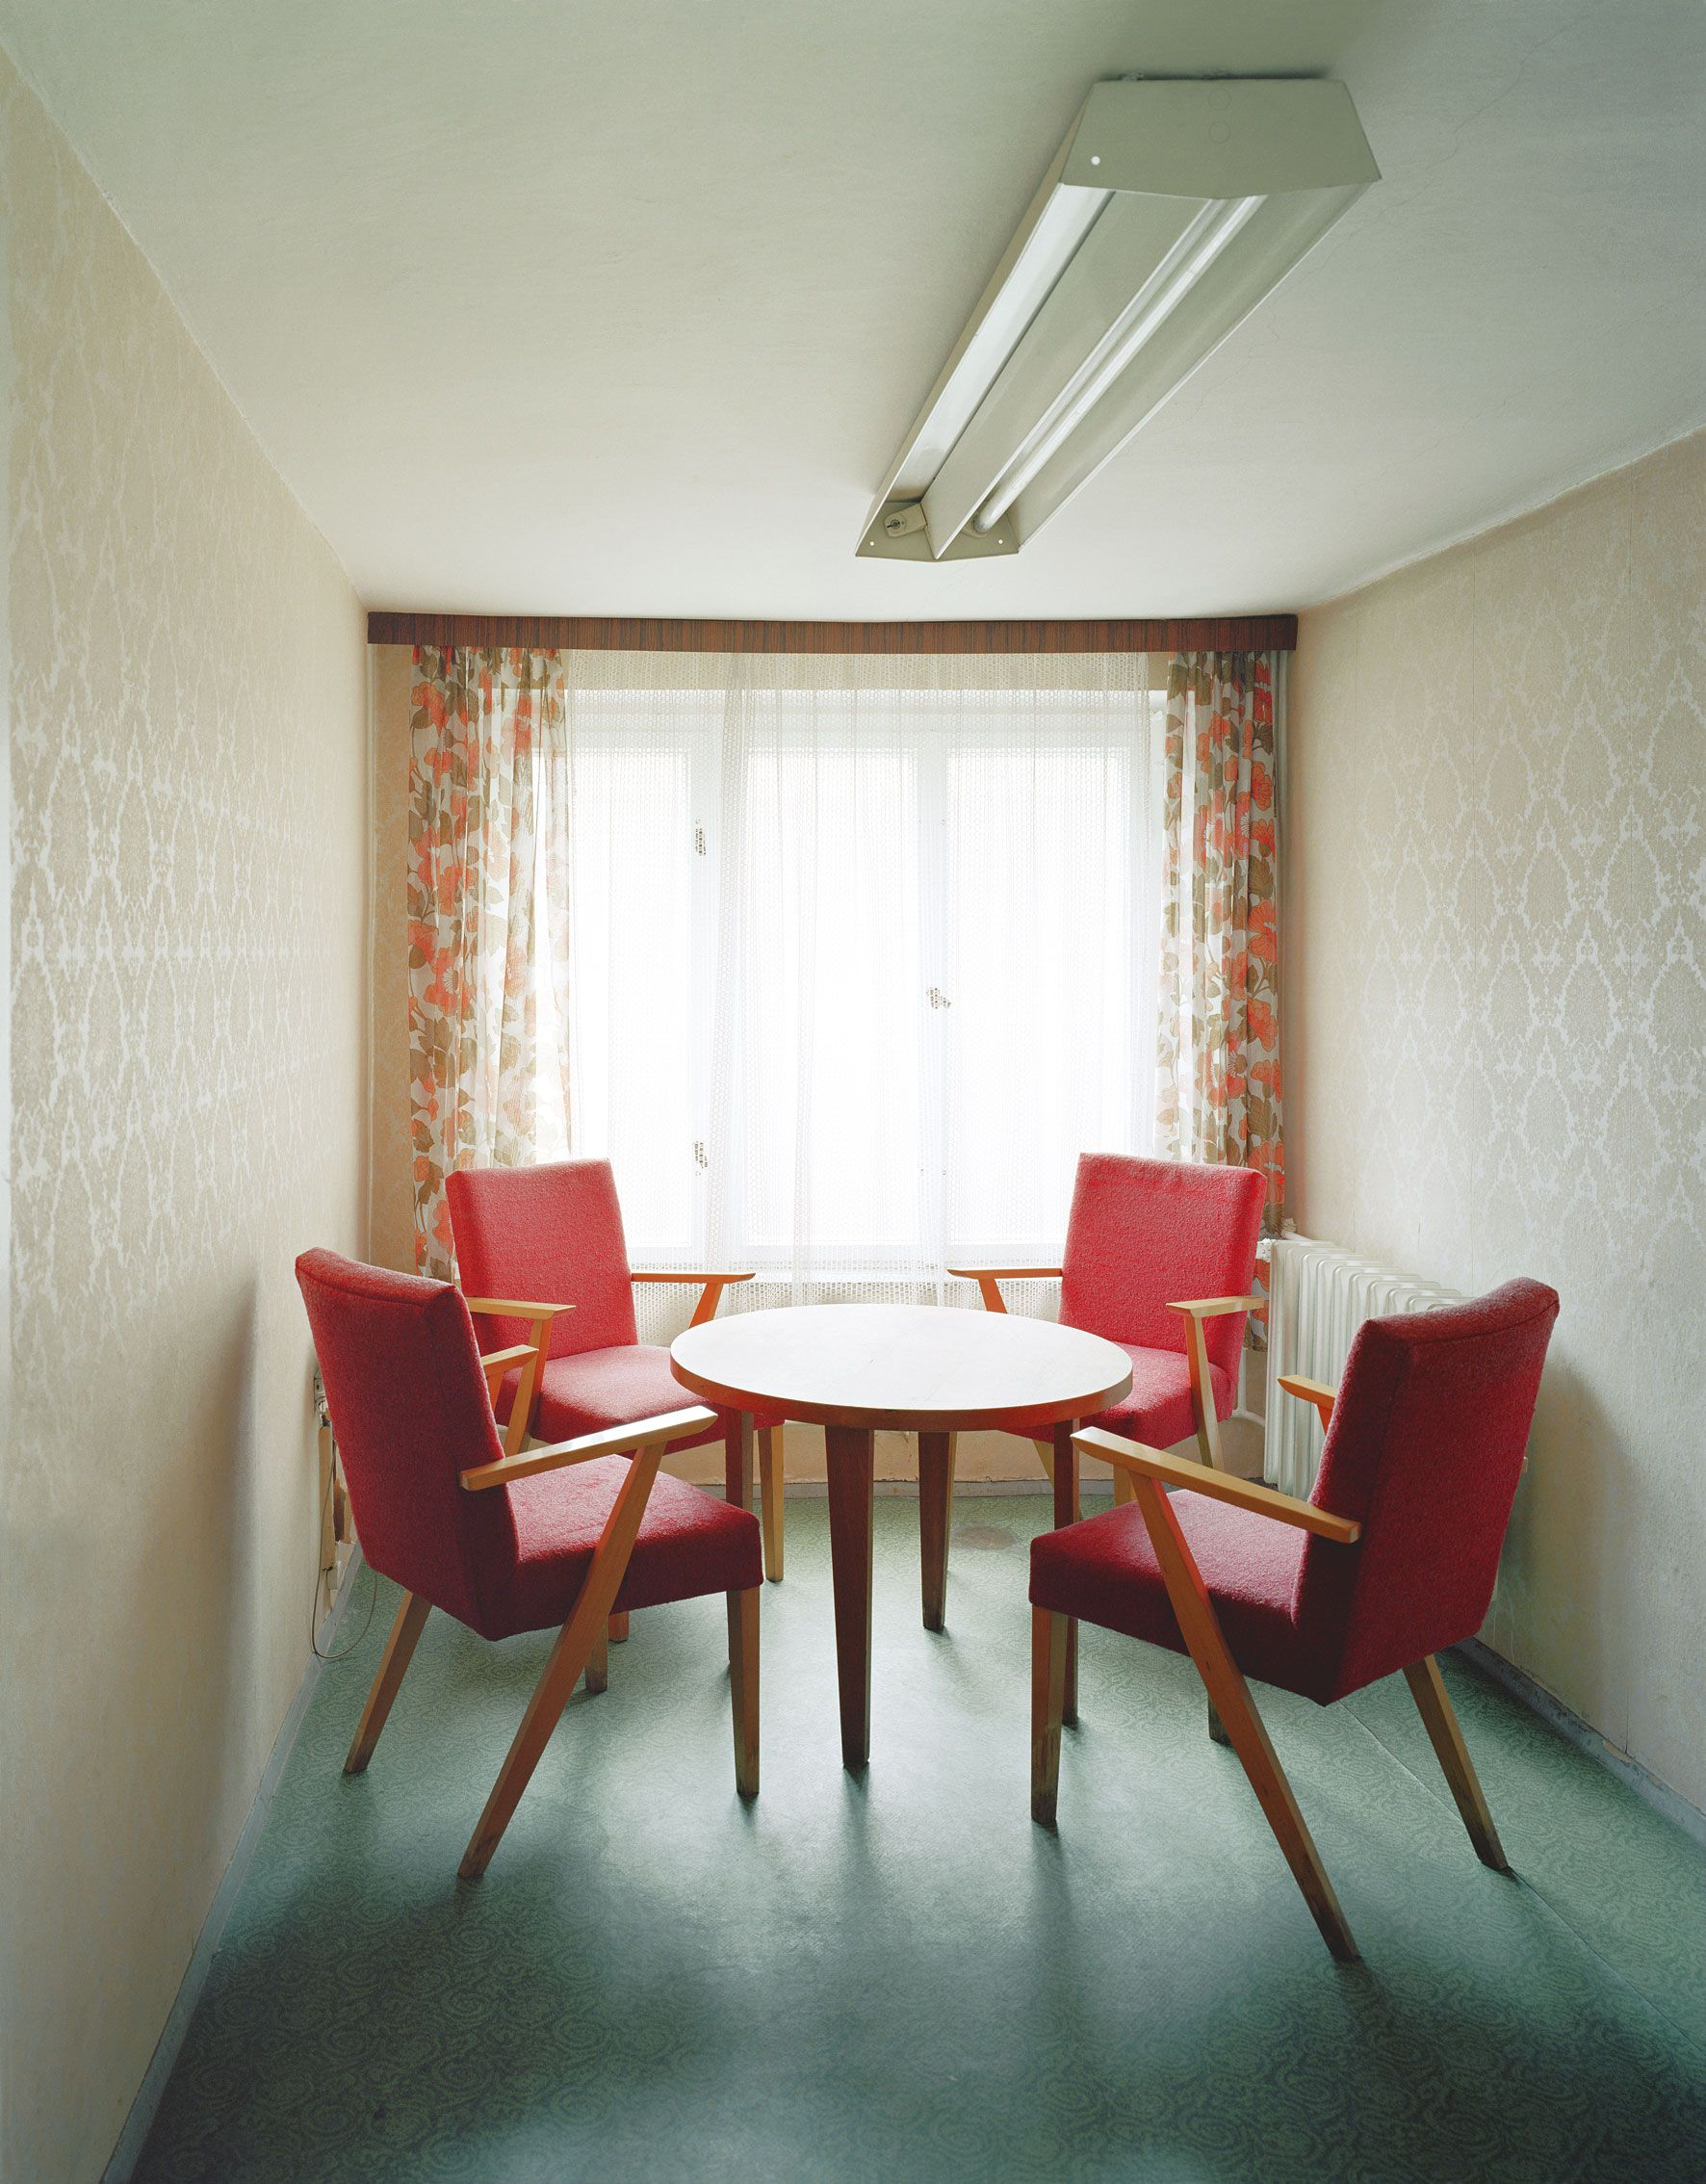 A room in a Stasi jail